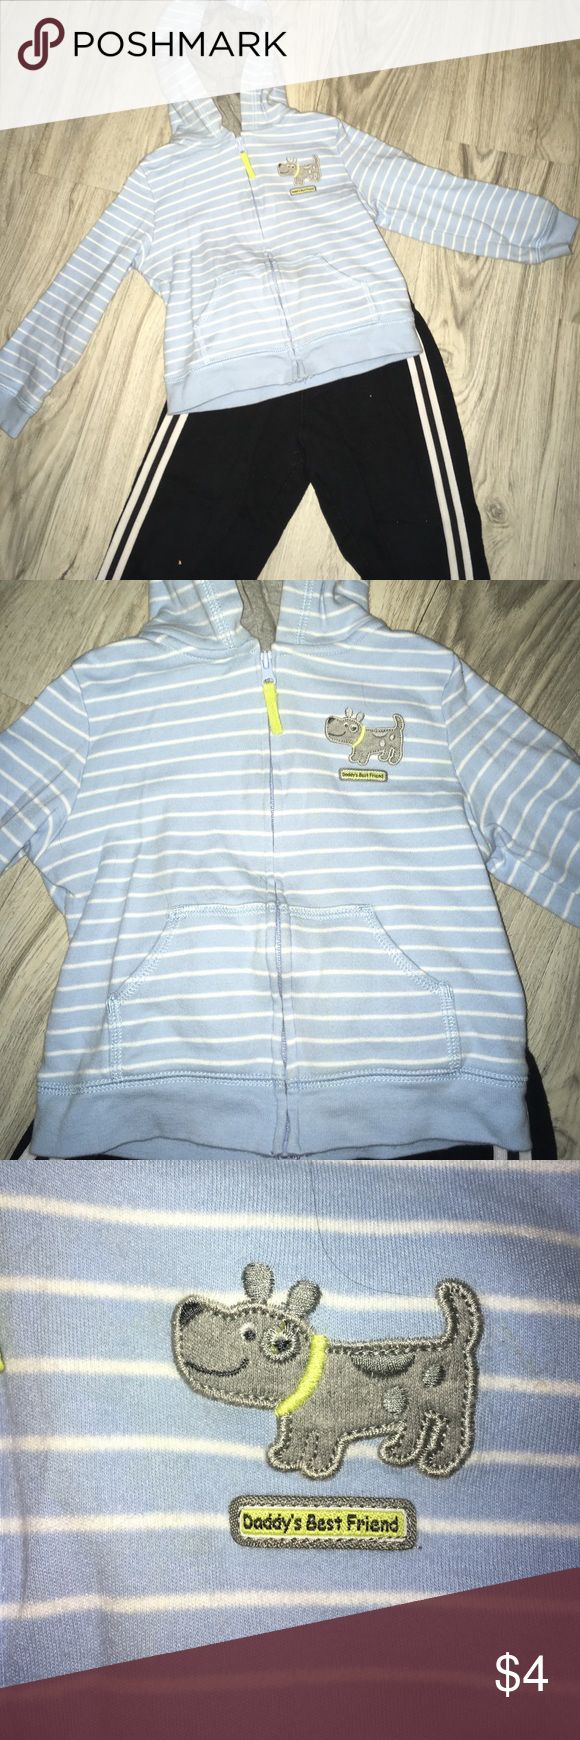 "🐕 Carters zip up striped hoodie EUC hoodie with pockets. Grey lining in hoodie. Blue and white stripes. Dog emblem says ""Daddy's Best Friend."" Bundle and save! Carter's Shirts & Tops Sweatshirts & Hoodies"